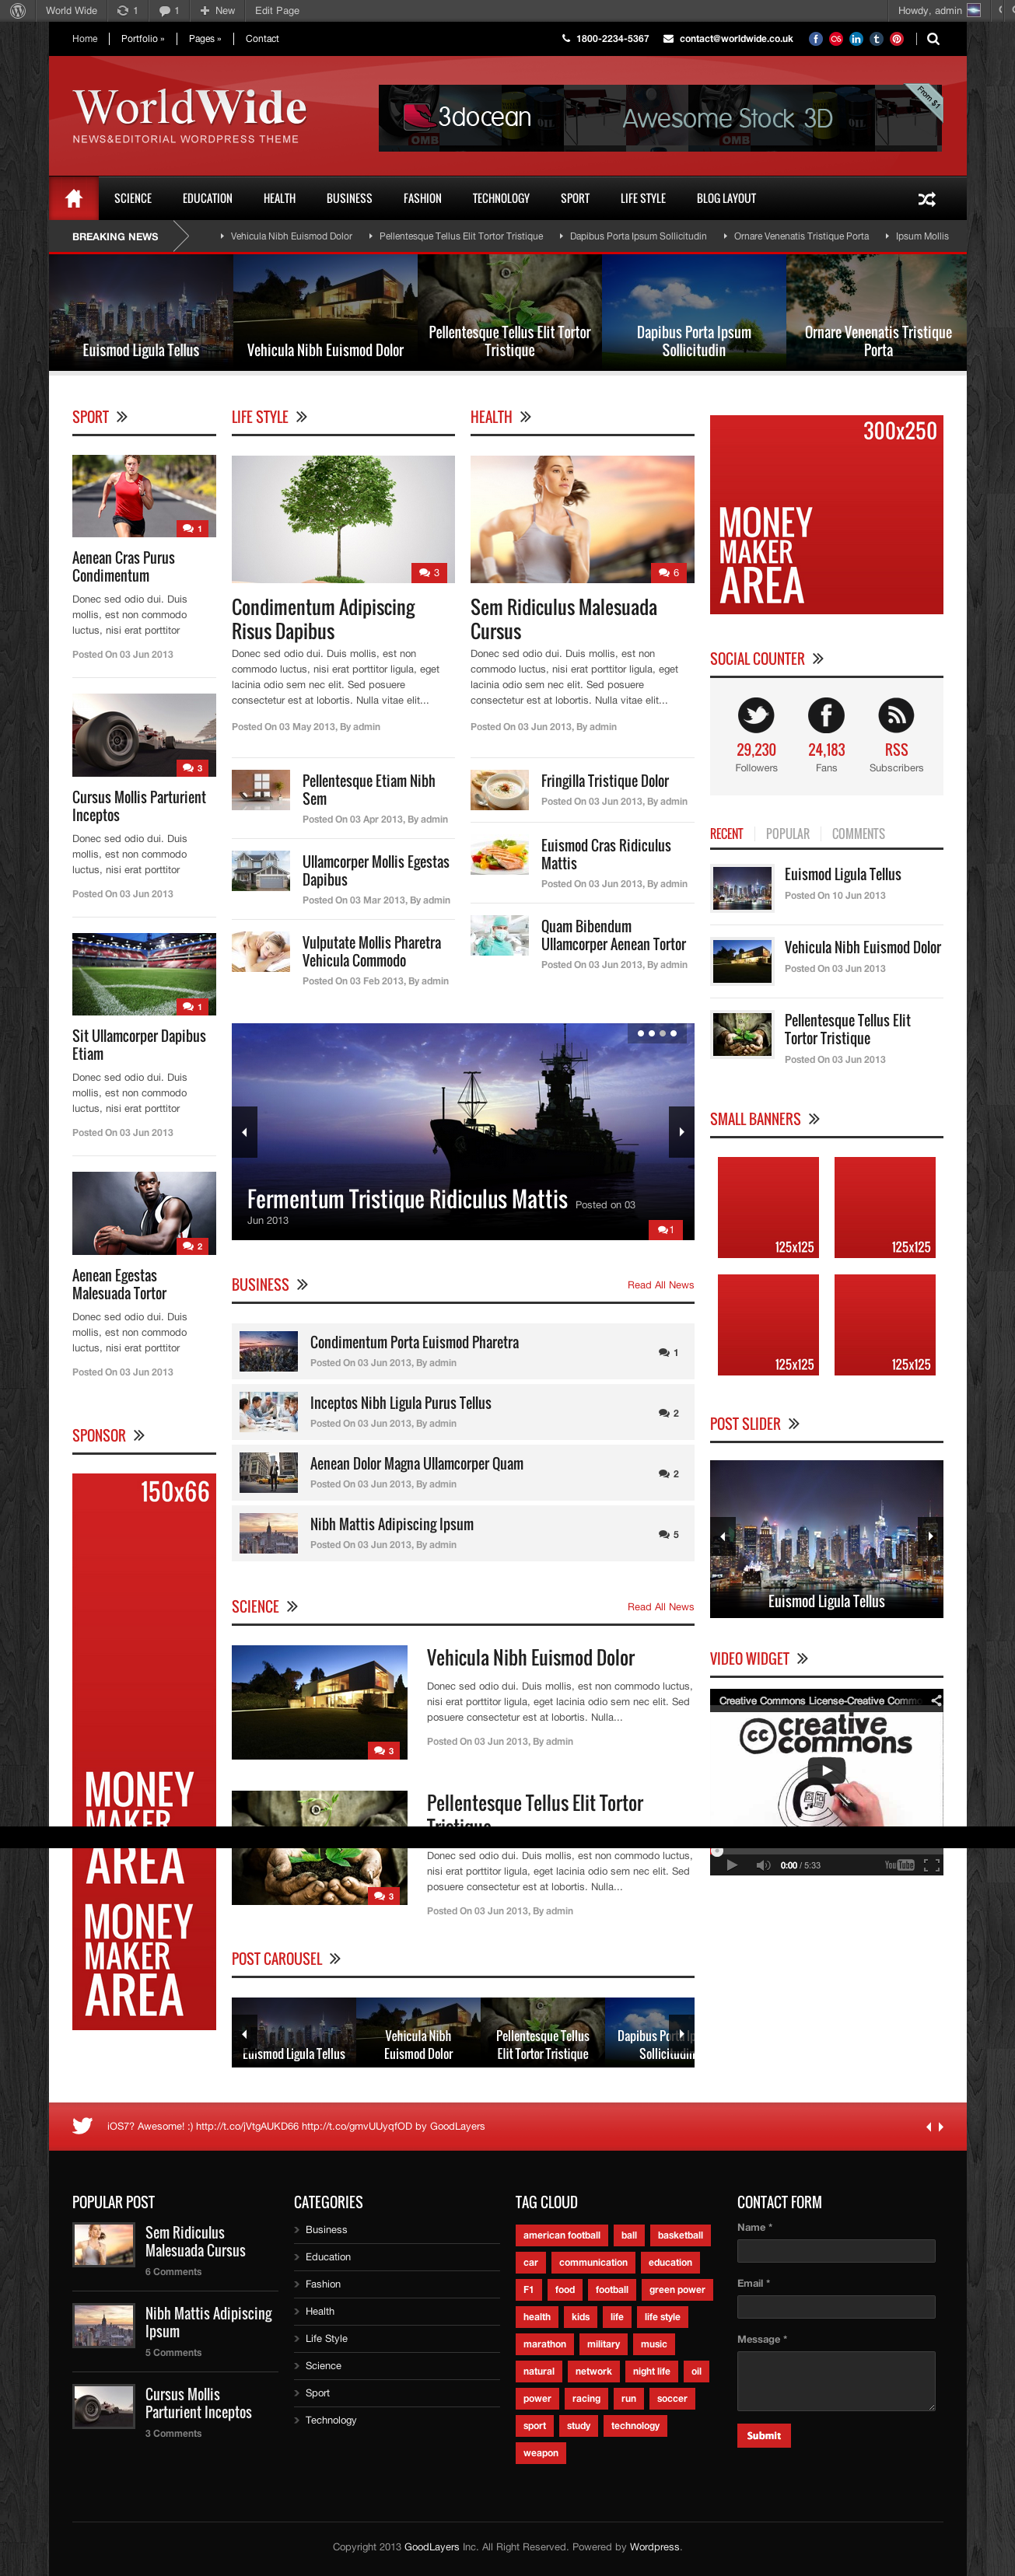 World Wide - Responsive Magazine WP Theme - index page with color changed